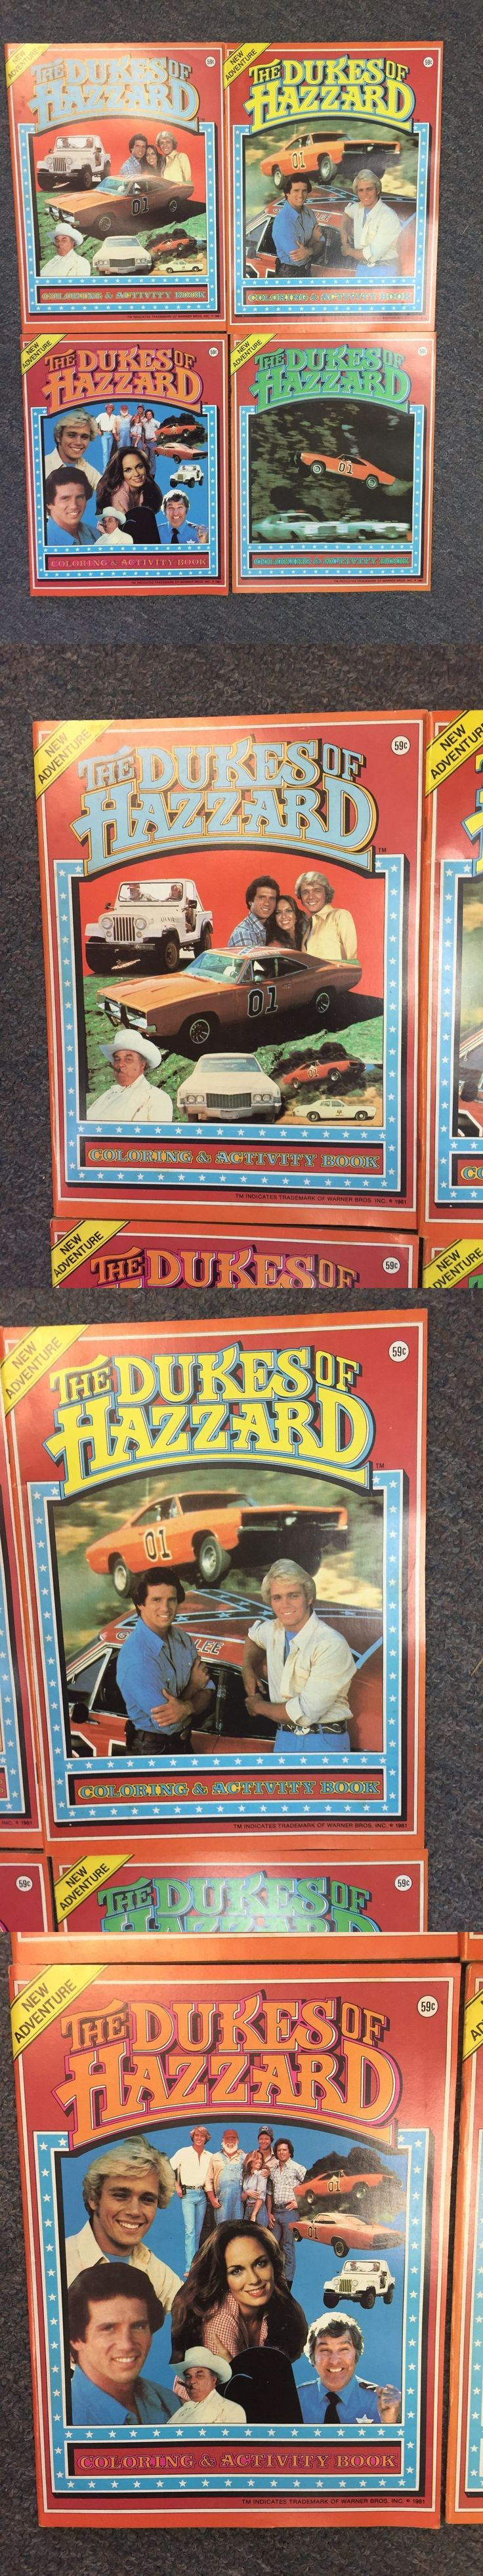 Dukes of Hazzard 20908: 1981 Dukes Of Hazard Activity And Coloring Book Set Of 4 Diff All Unused L@@K -> BUY IT NOW ONLY: $30 on eBay!